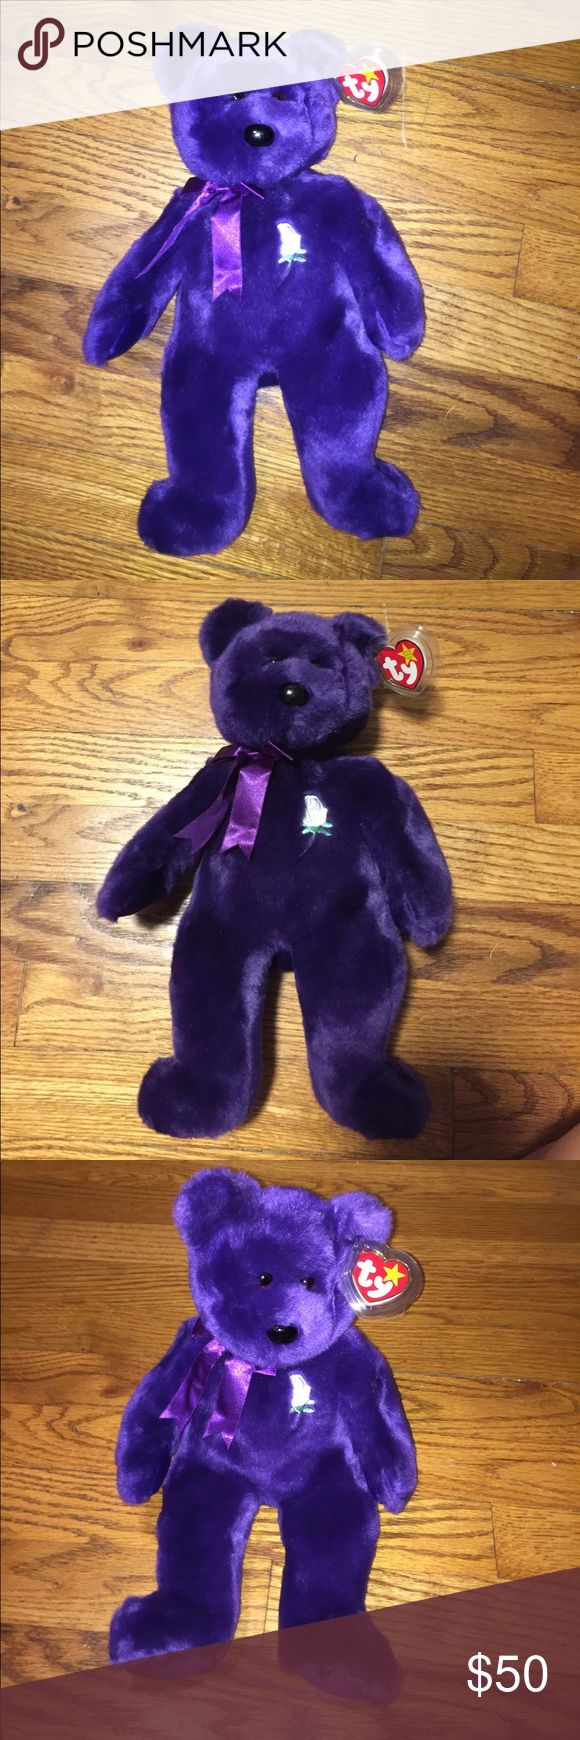 Princess Diana Beanie buddie! Perfect condition Princess Diana Beanie BUDDY (not to confuse with the beanie baby). I also have a princes Diana beanie baby for sale. Willing to offer (: Other